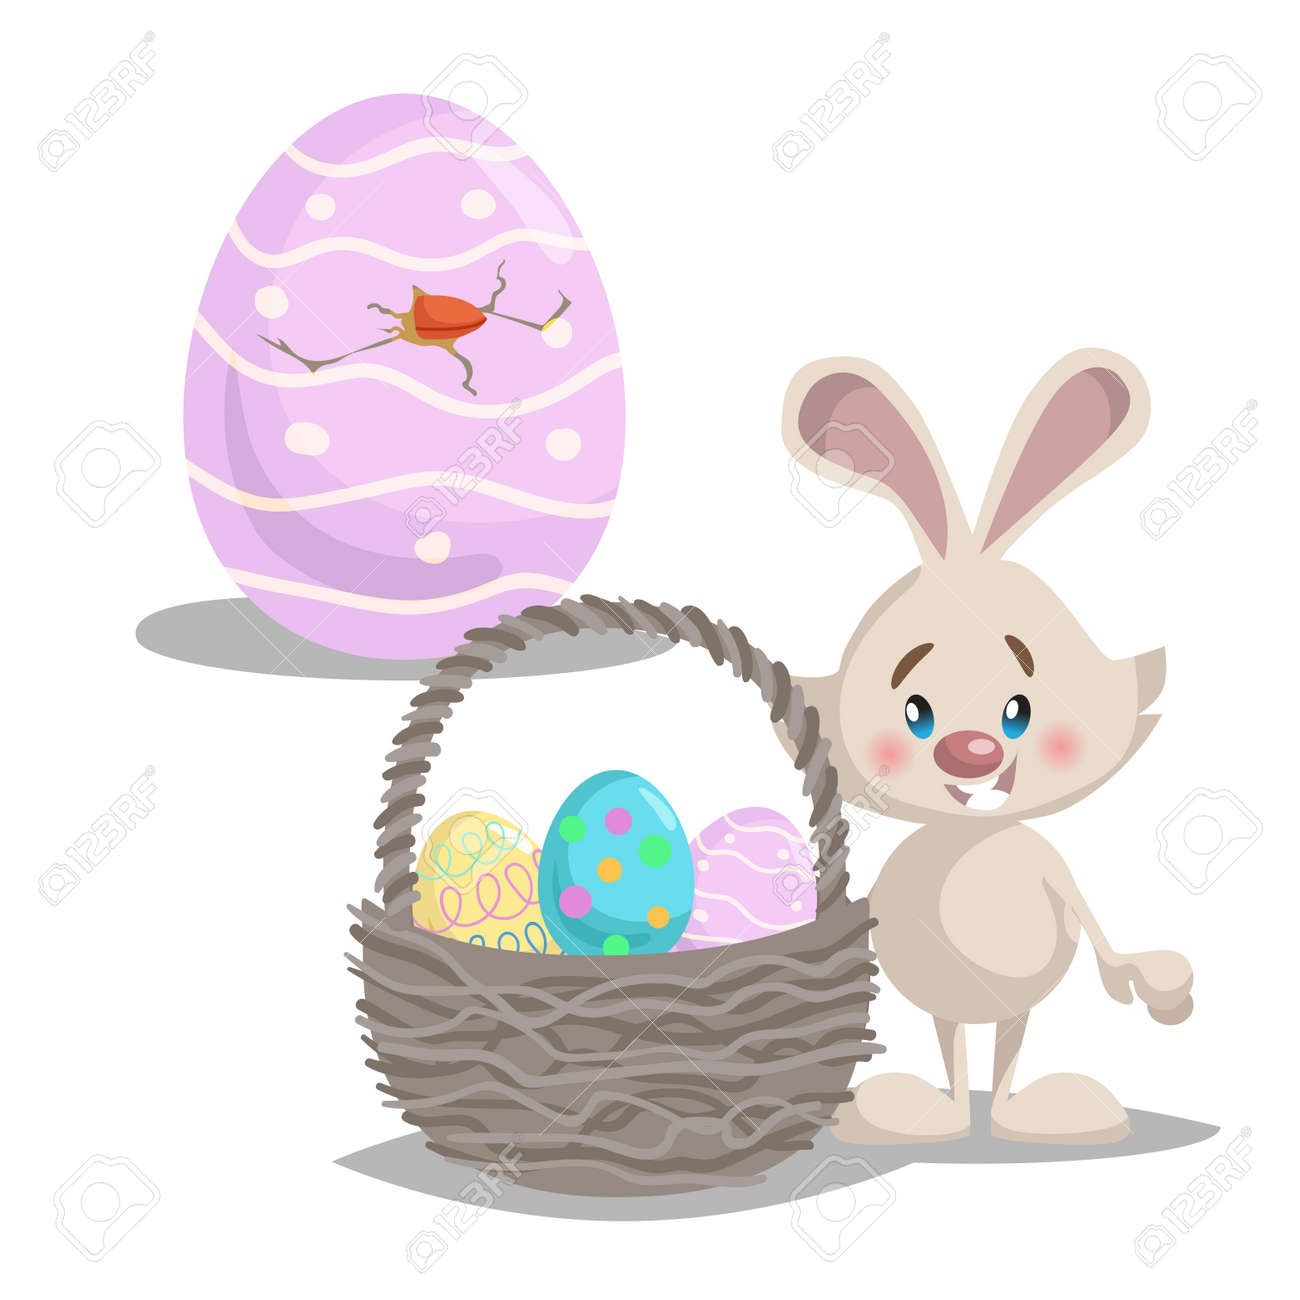 Cartoon Cute Smiling Easter Bunny With Big Basket And Painted